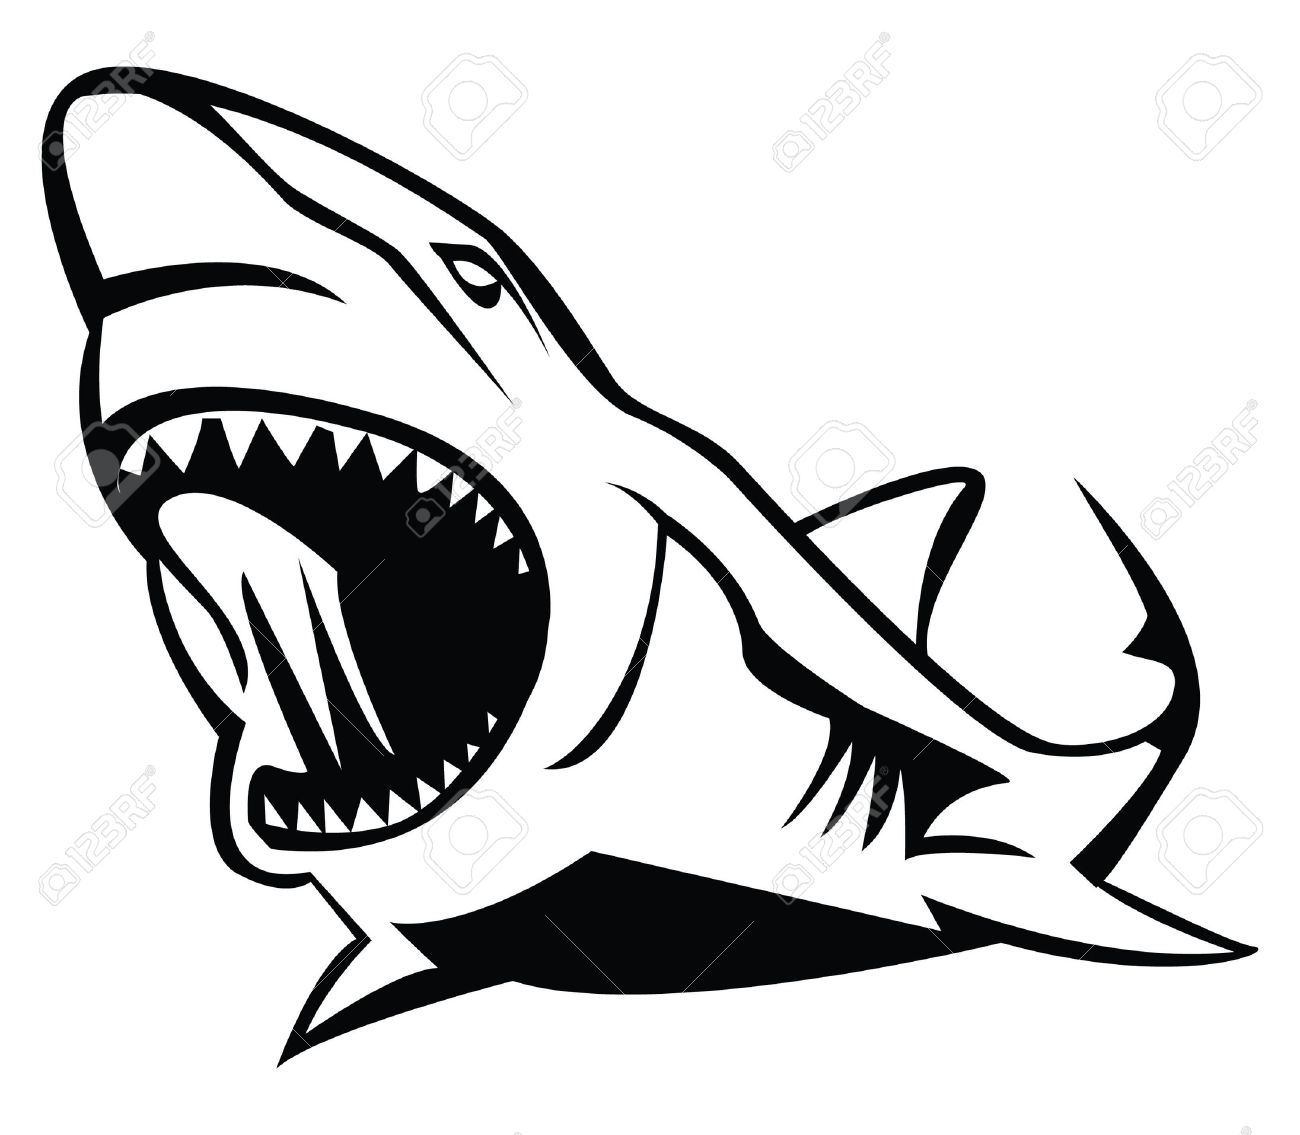 Shark Mouth Drawing at GetDrawings.com | Free for personal use Shark ... for shark drawing open mouth  174mzq